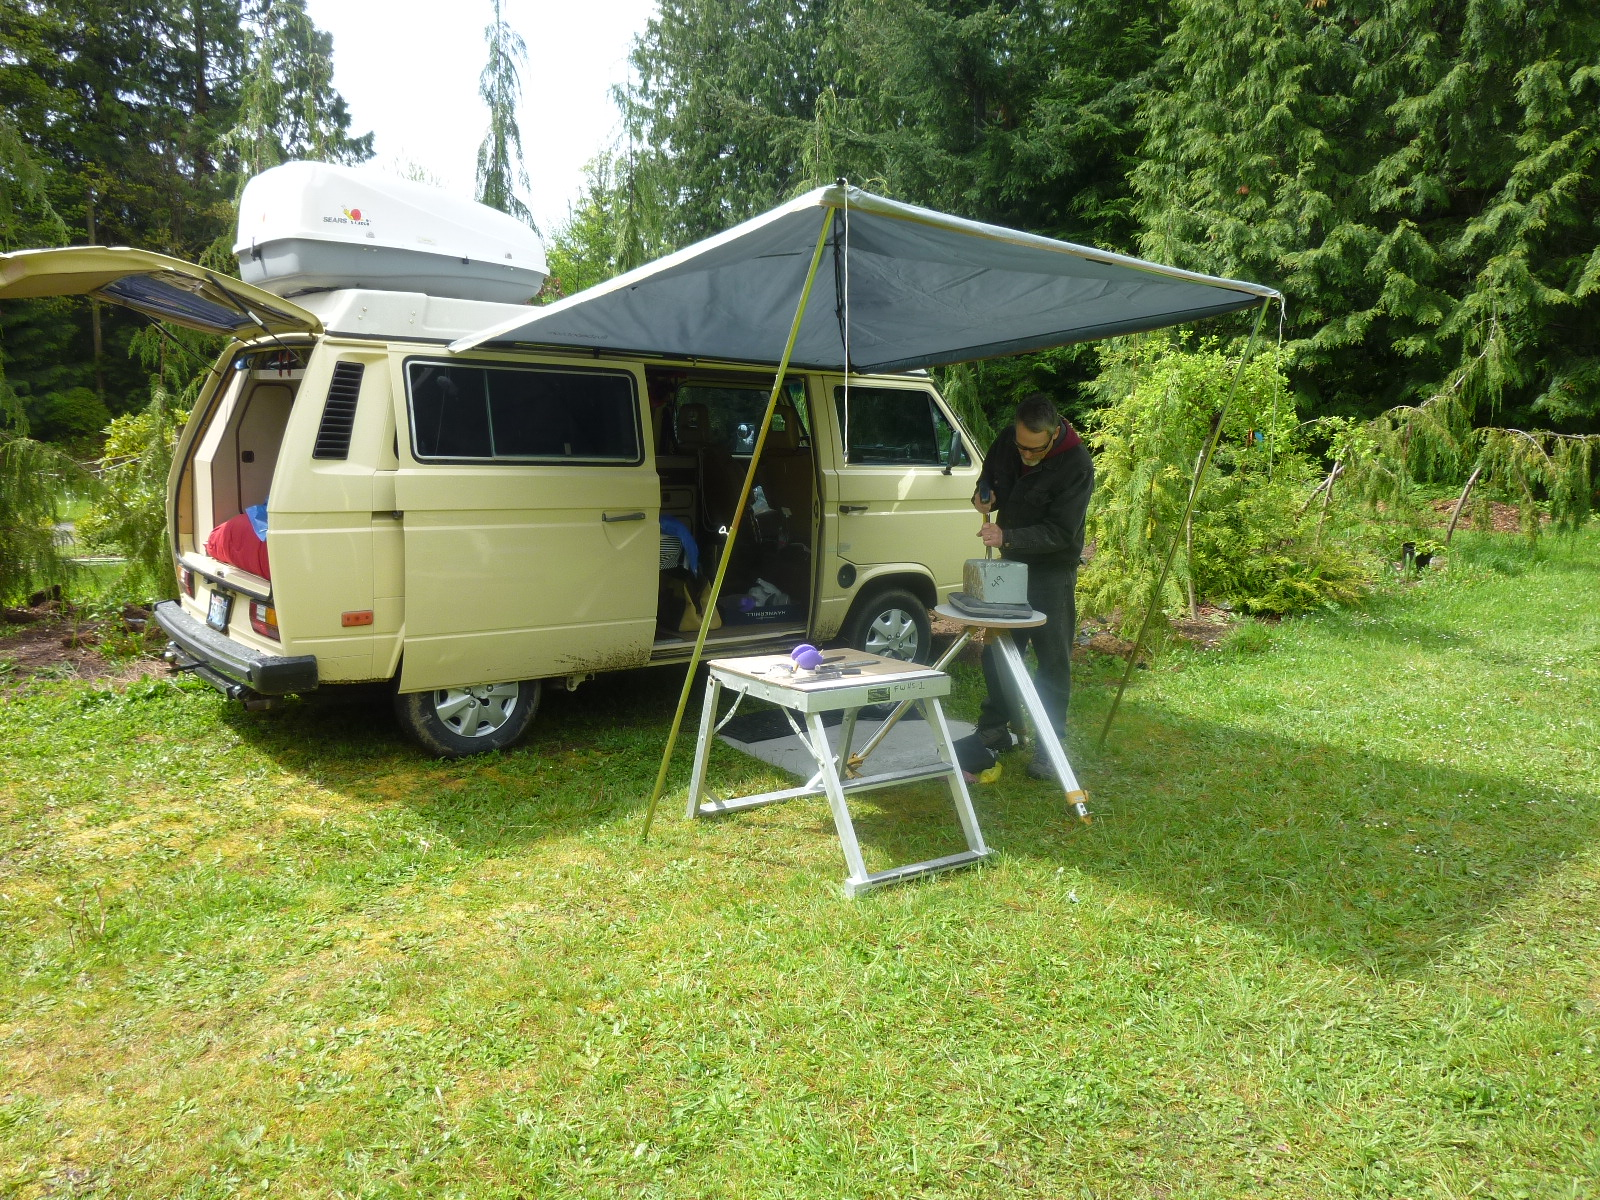 Paul Sizer spent a year touring the US in this Vanagon before bringing it to the workshop as his pop-up tent.